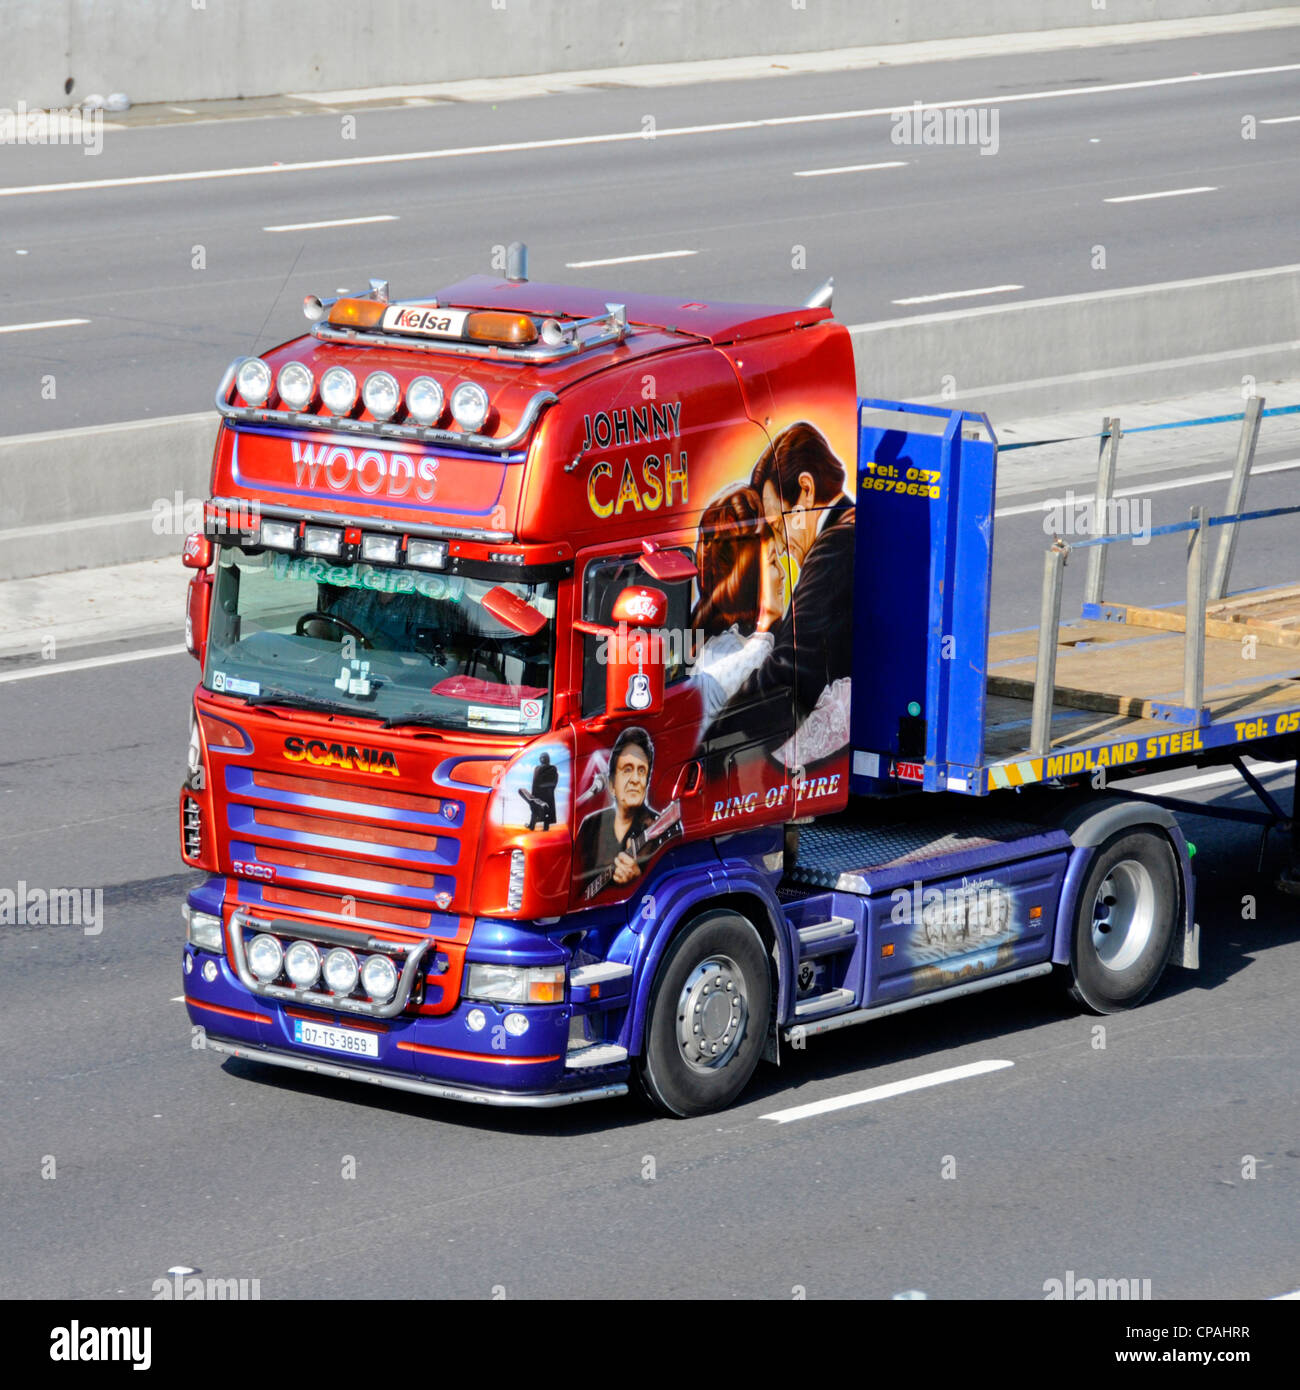 Decorated Truck Stock Photos & Decorated Truck Stock Images - Alamy